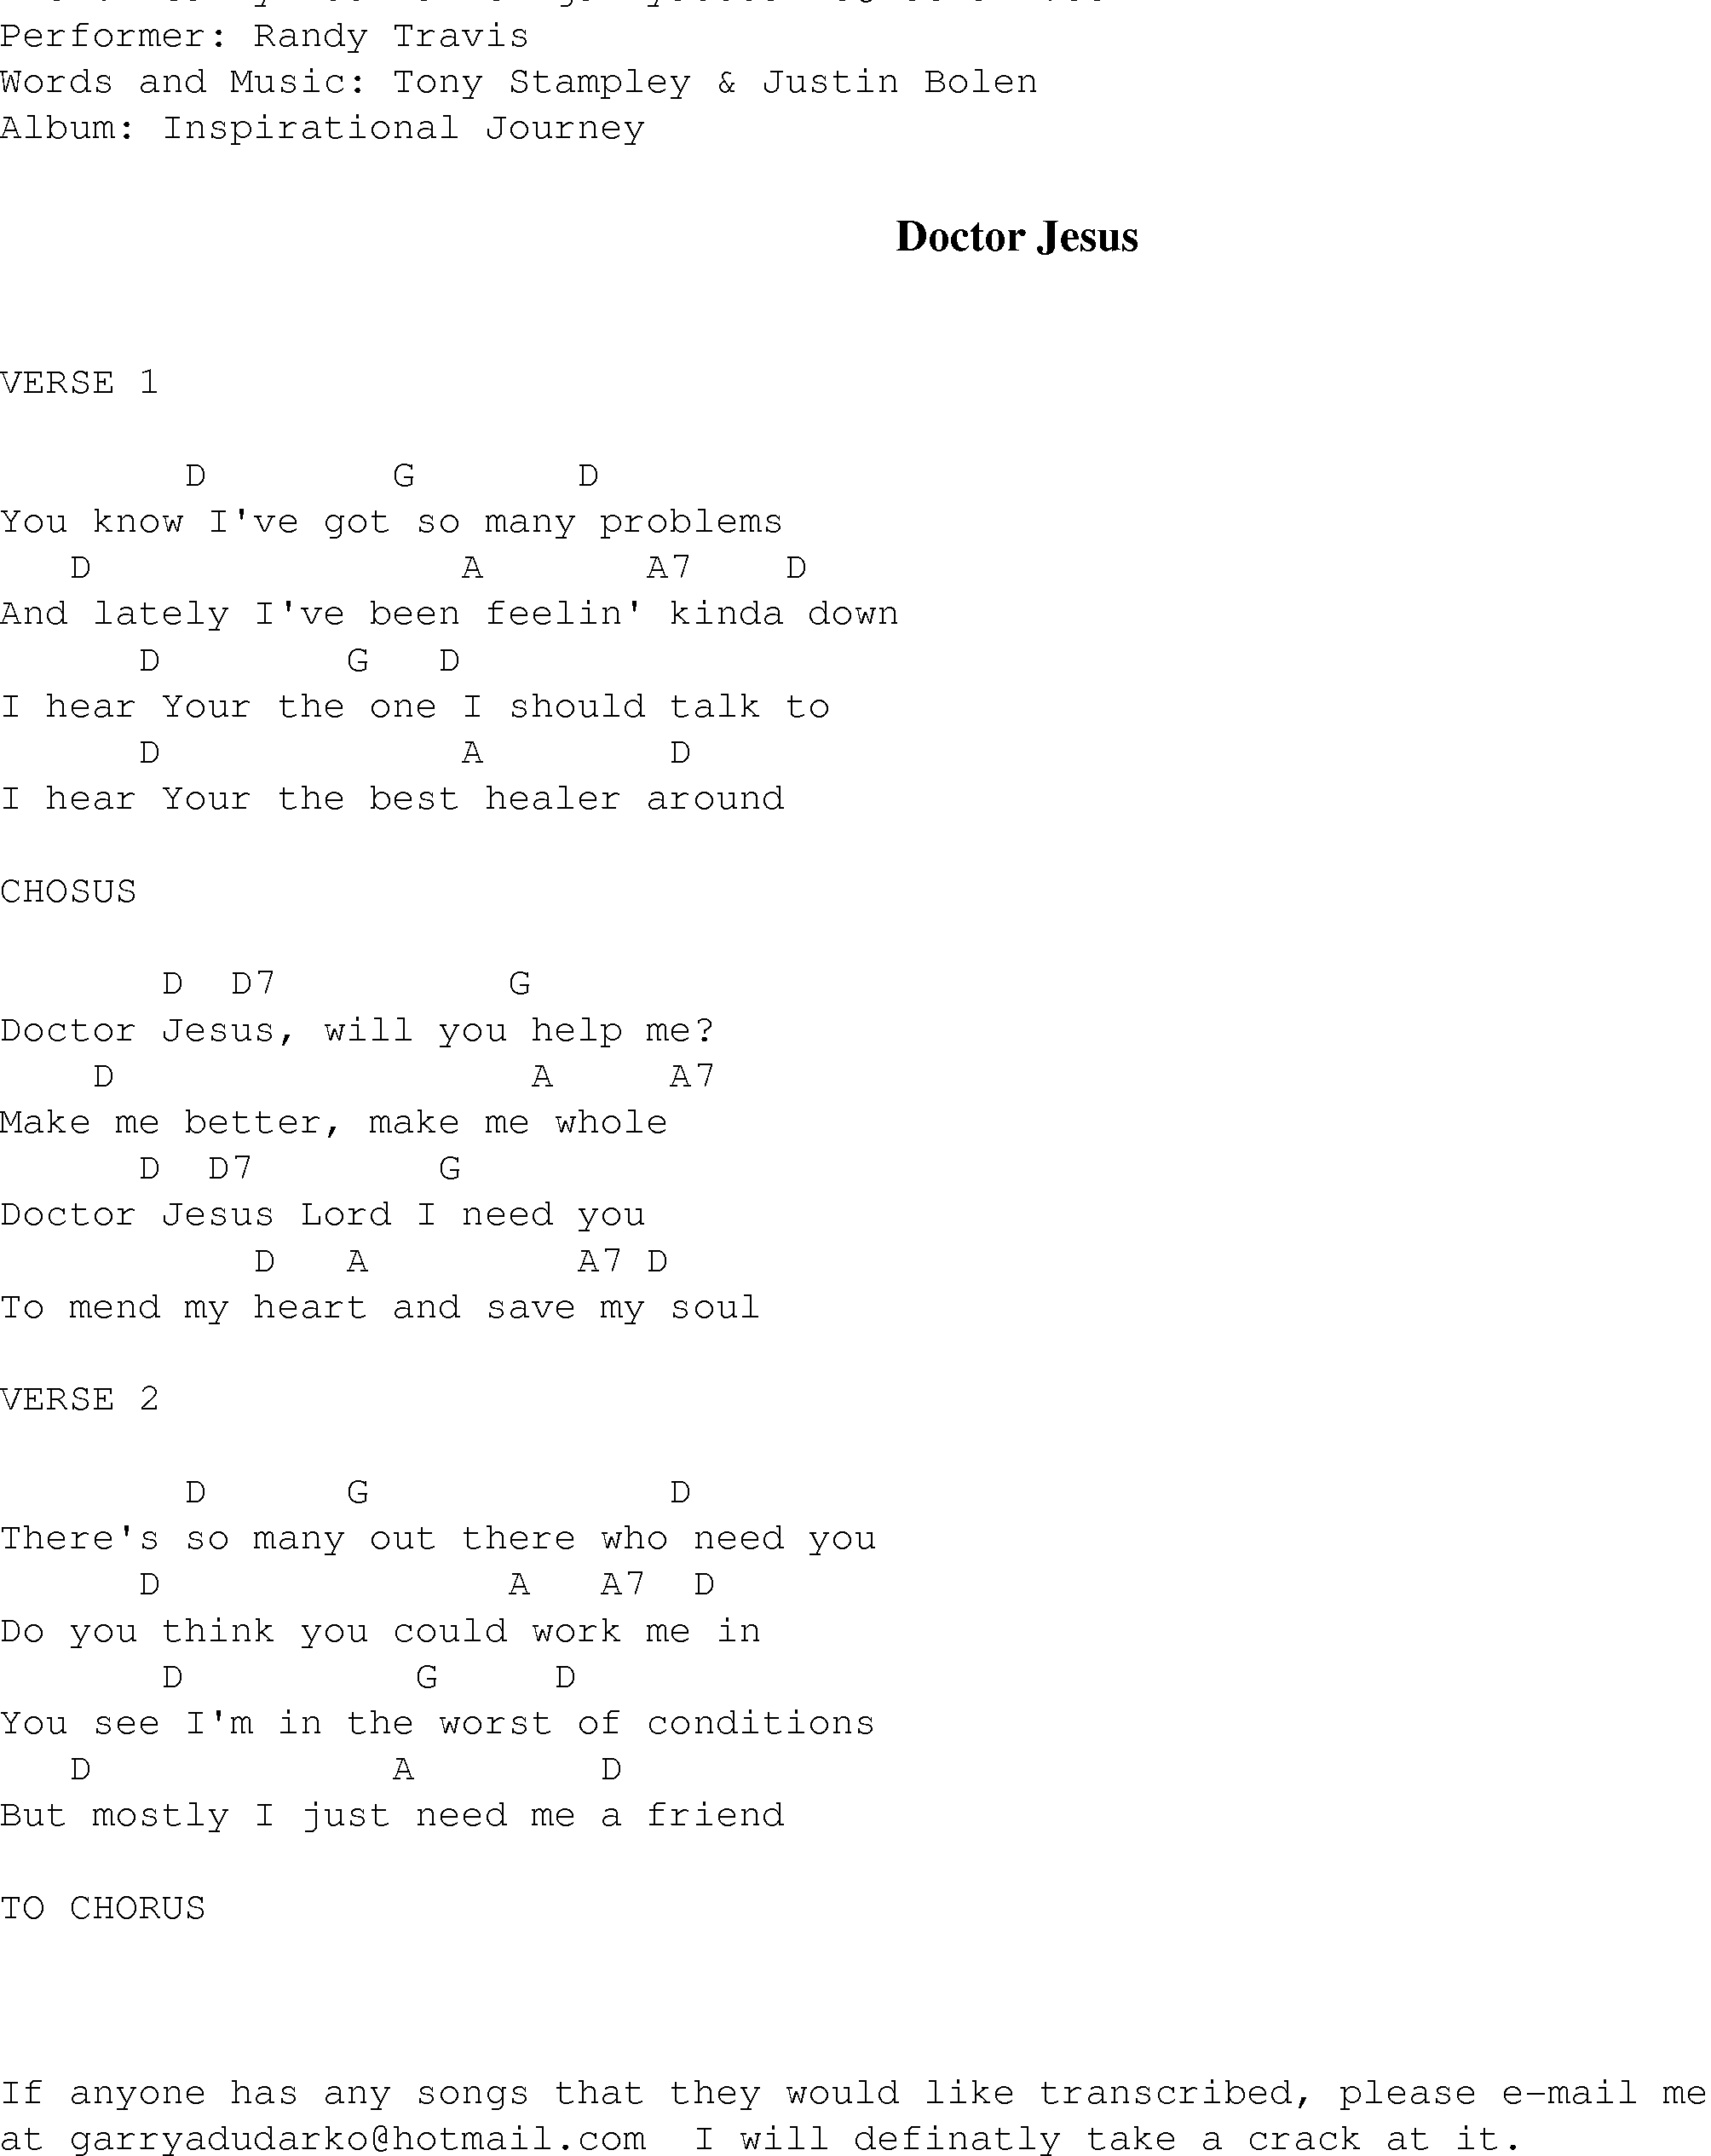 Doctor Jesus - Christian Gospel Song Lyrics and Chords